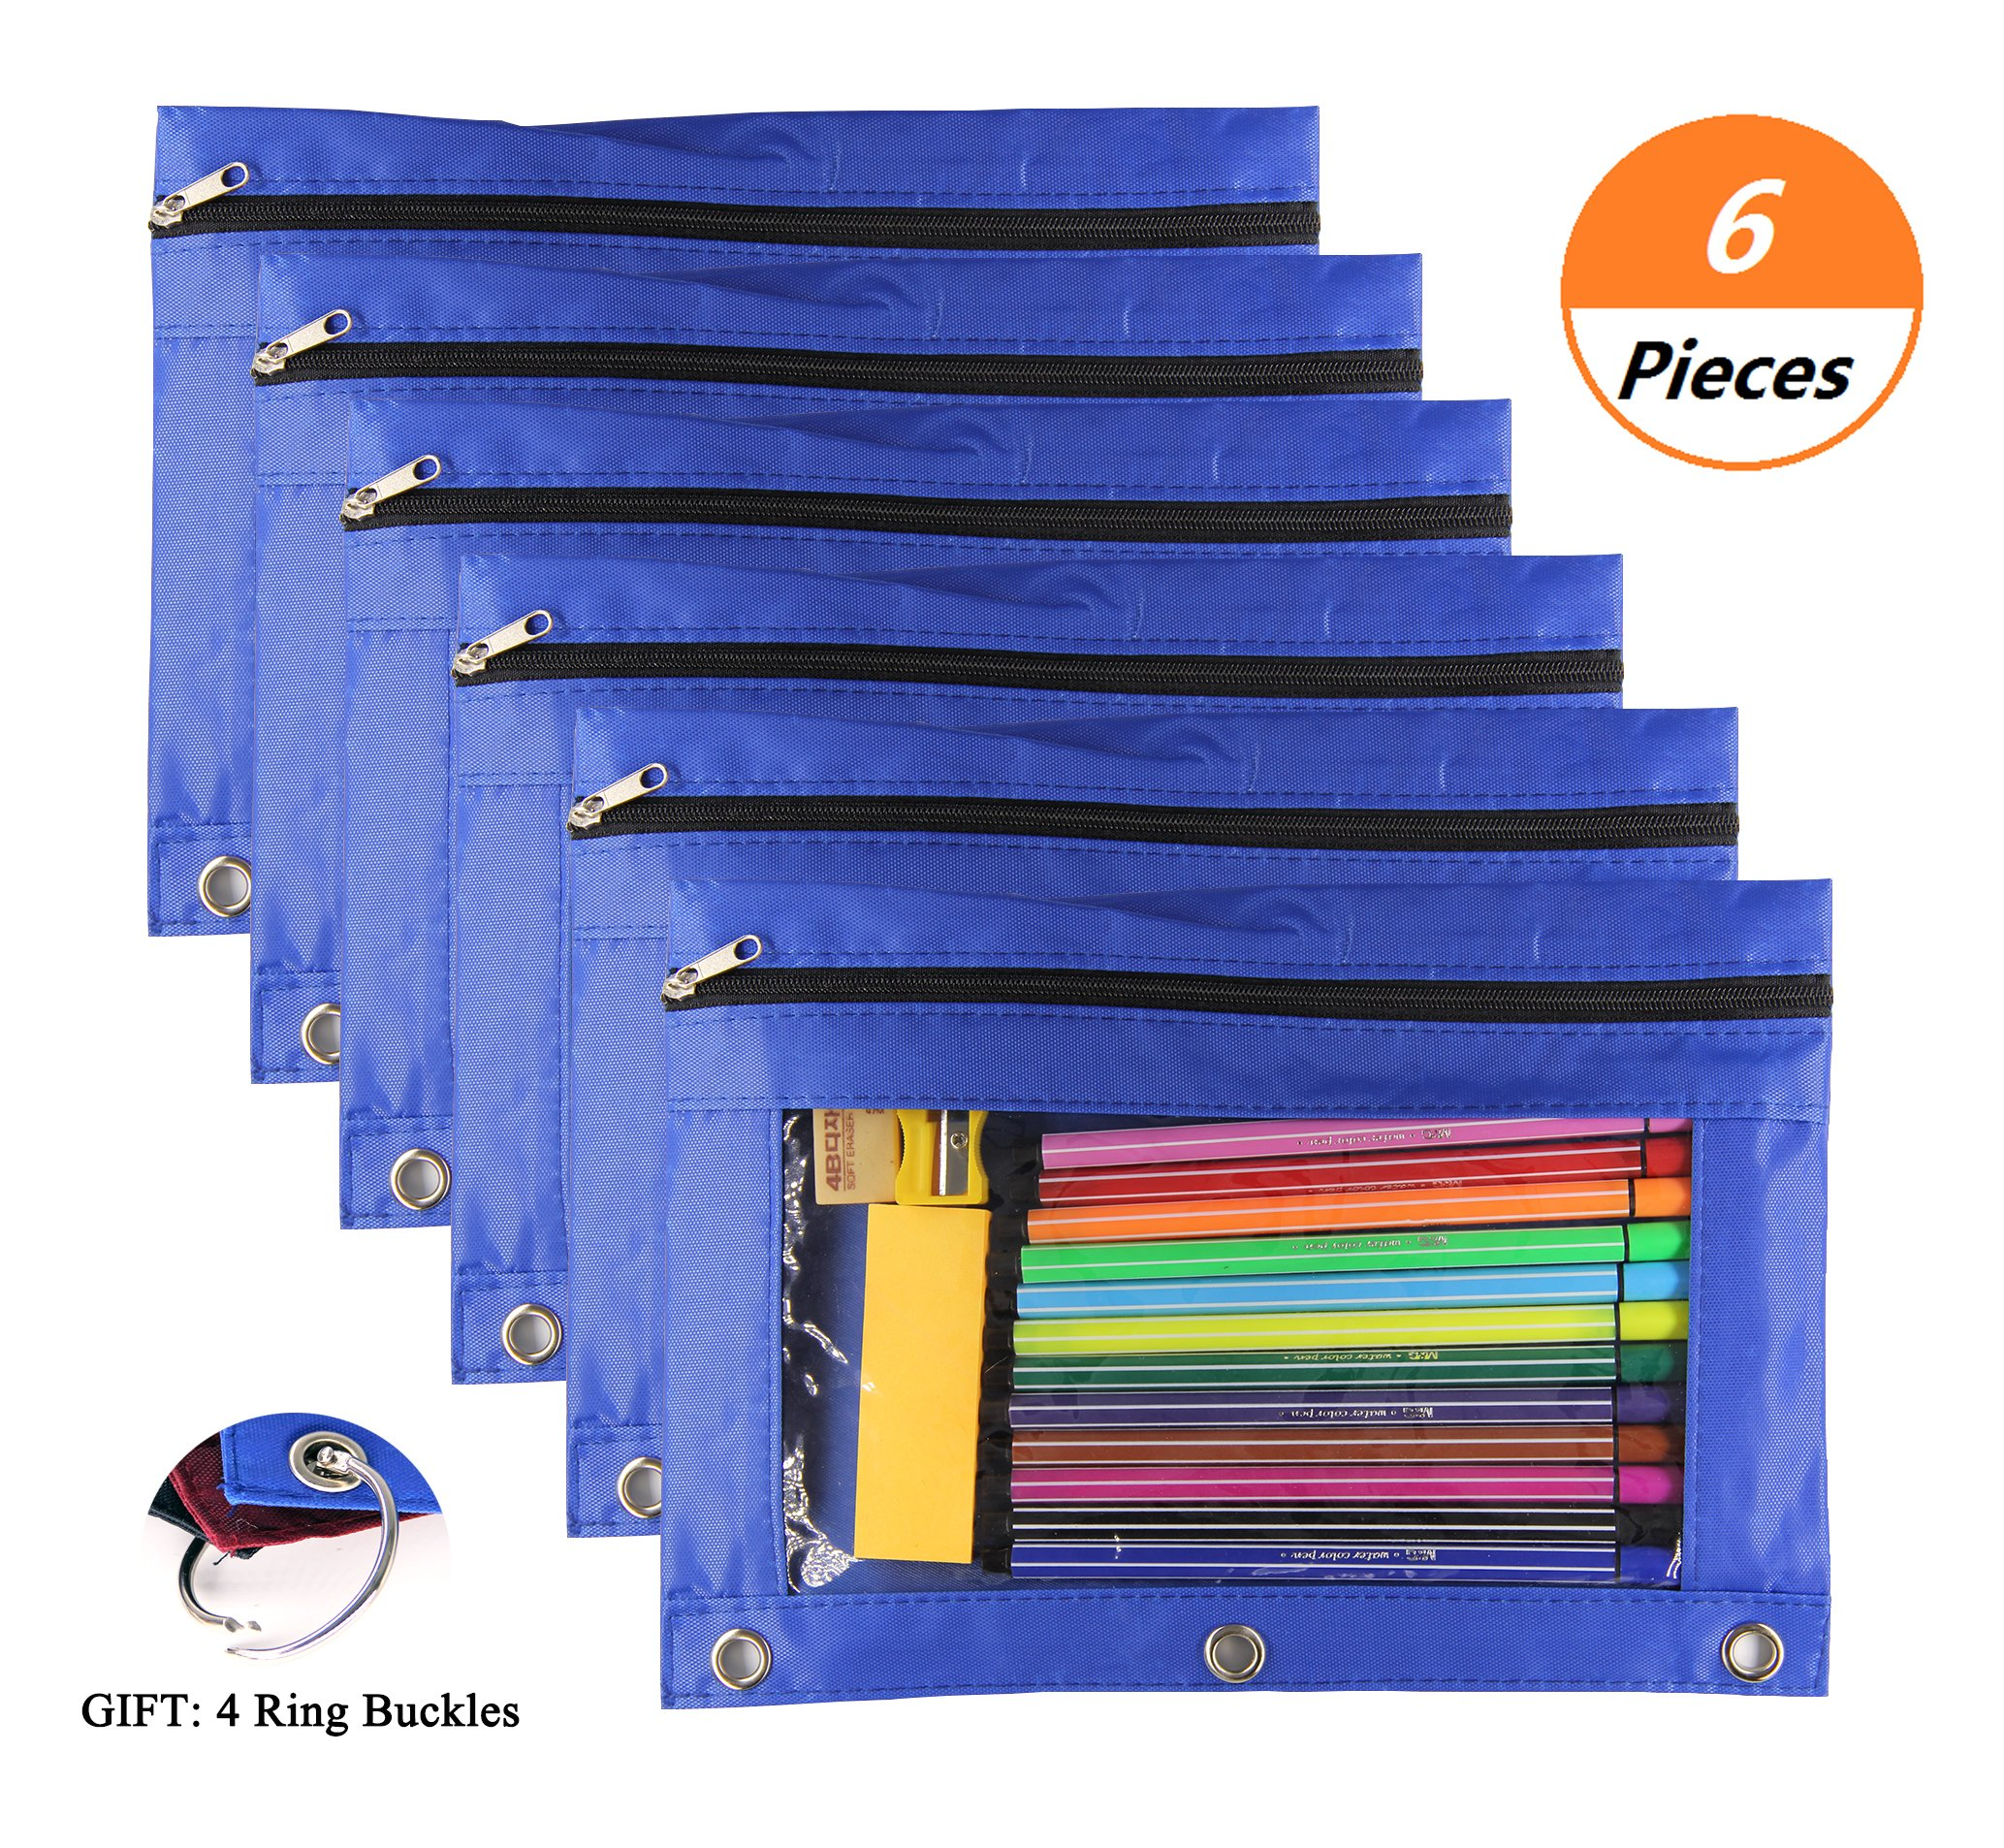 3 Ring Binder Pencil Pen Pouch - 6 Pcs Zipper Binder Pouch with Clear Window for School Office Daily Storage (Blue)